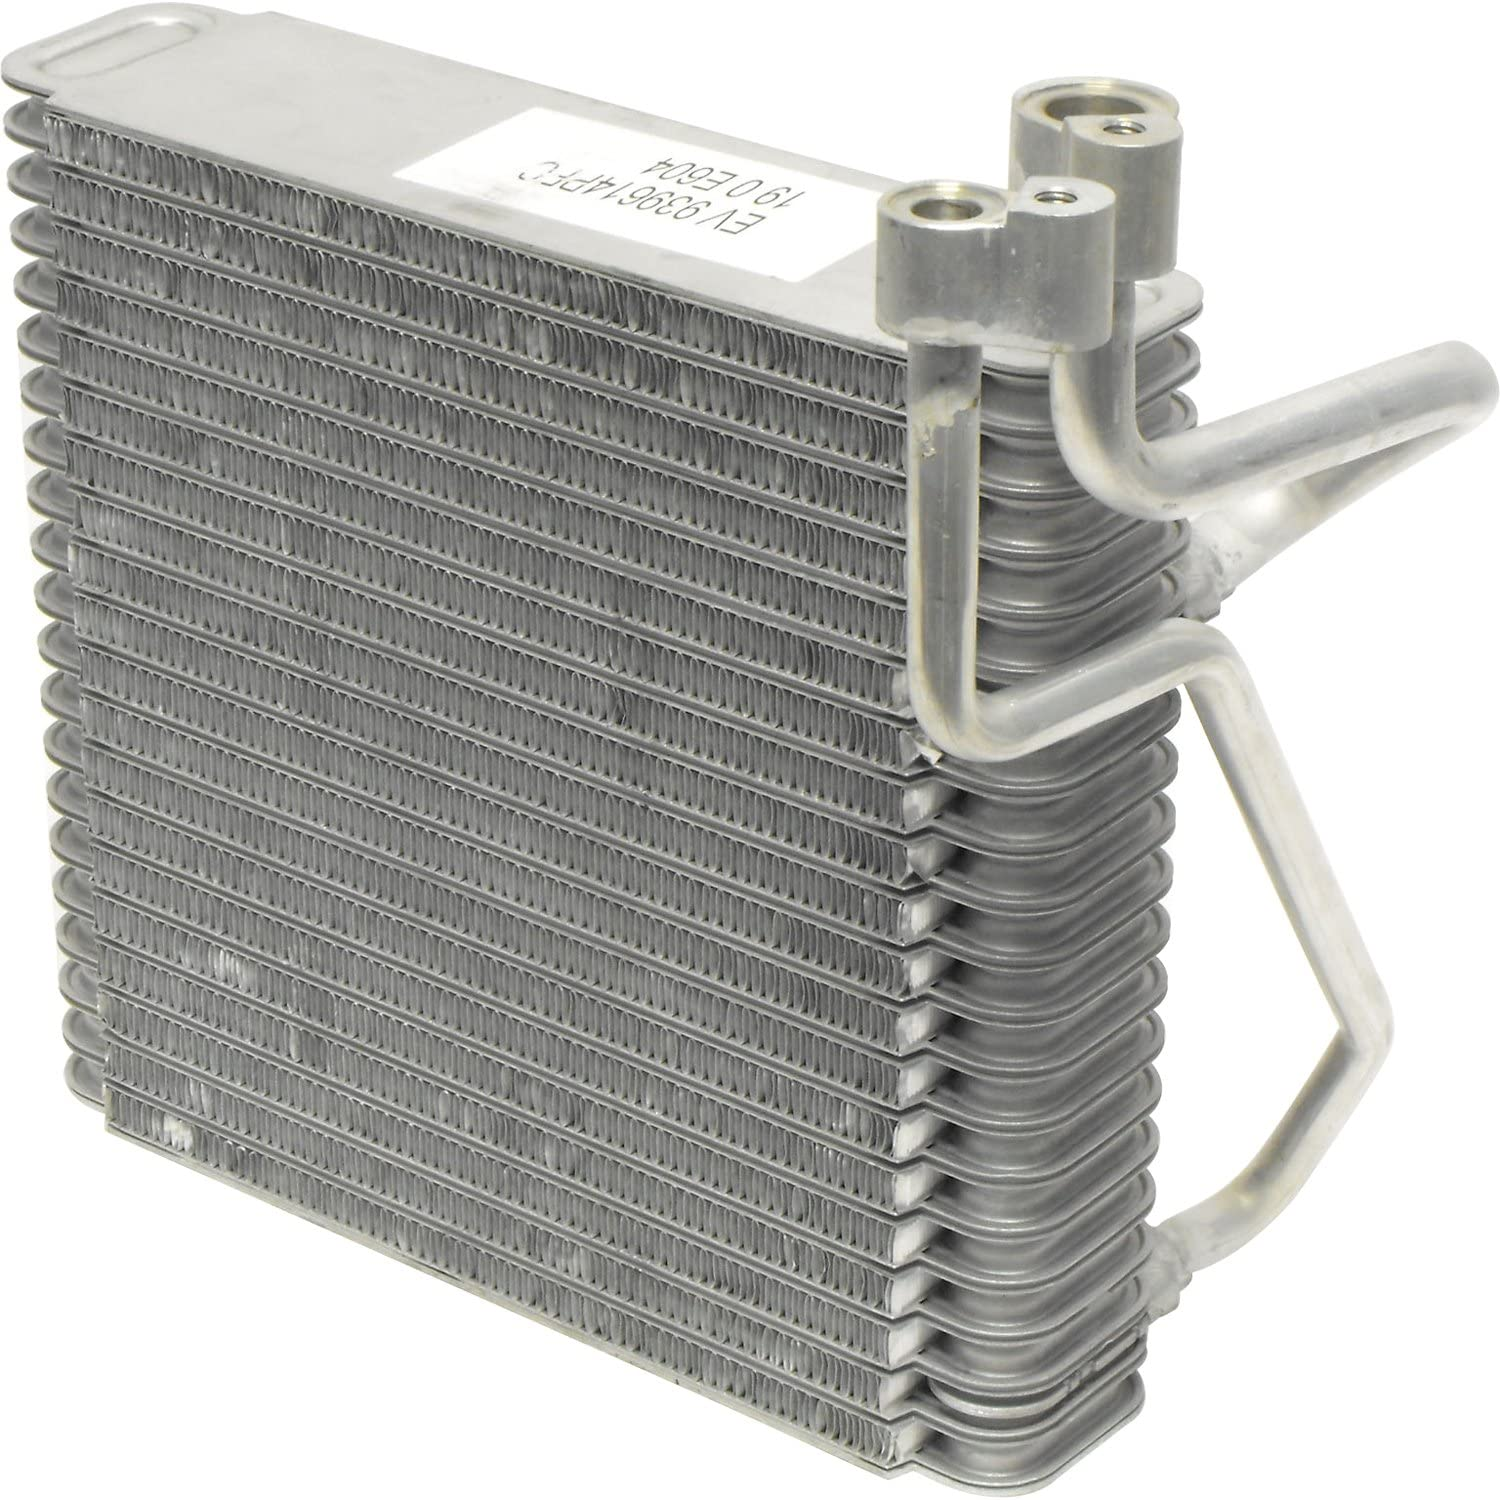 In a popularity EVAP CORE All items free shipping ASSY - NEW EVAPORATOR